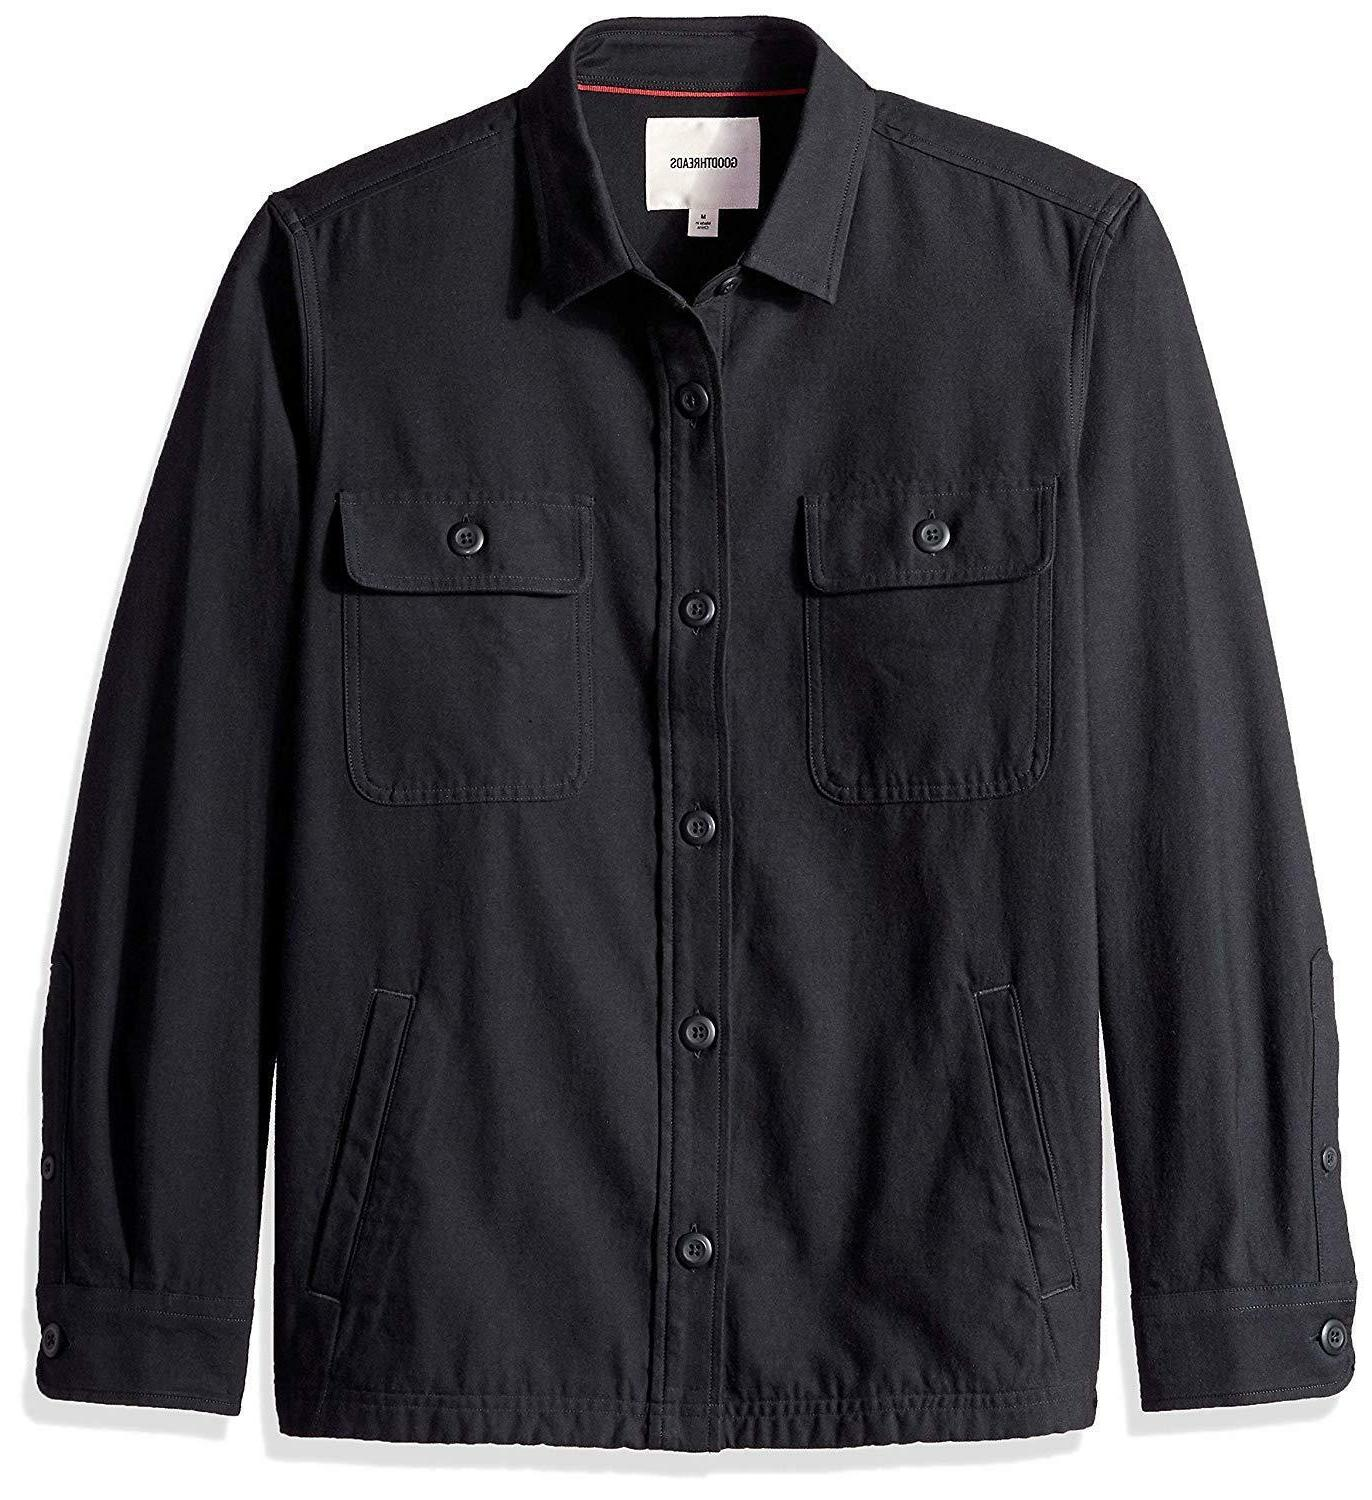 Goodthreads Men's Twill Shirt